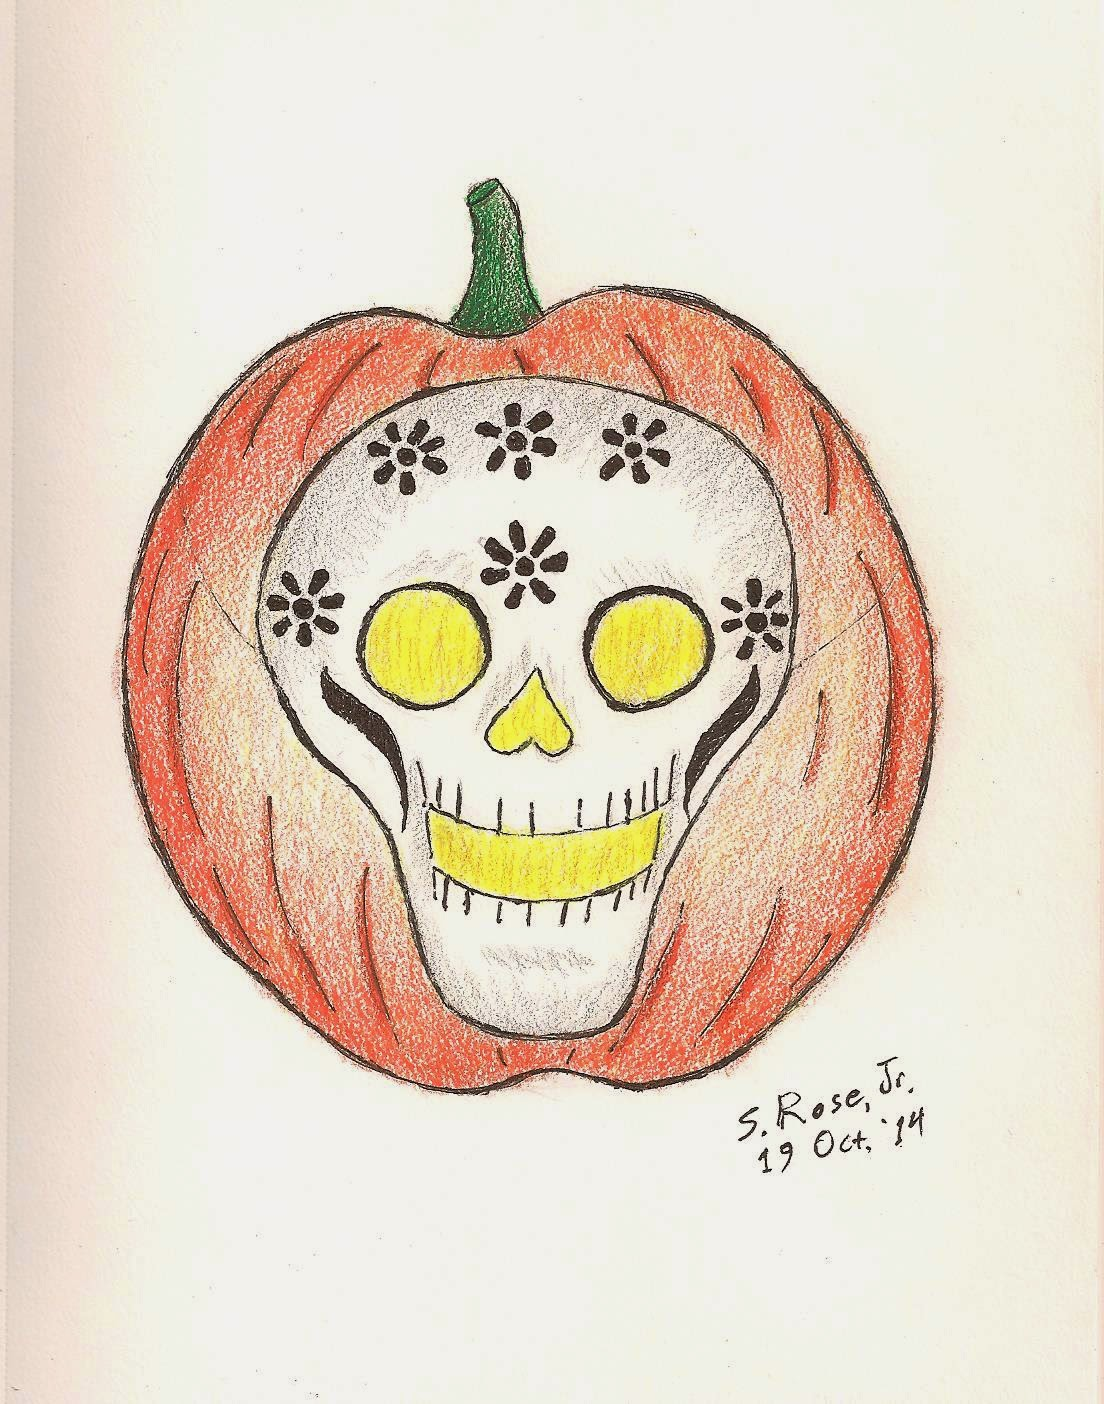 A jack-o'-lantern wearing a Day of the Dead skull mask.